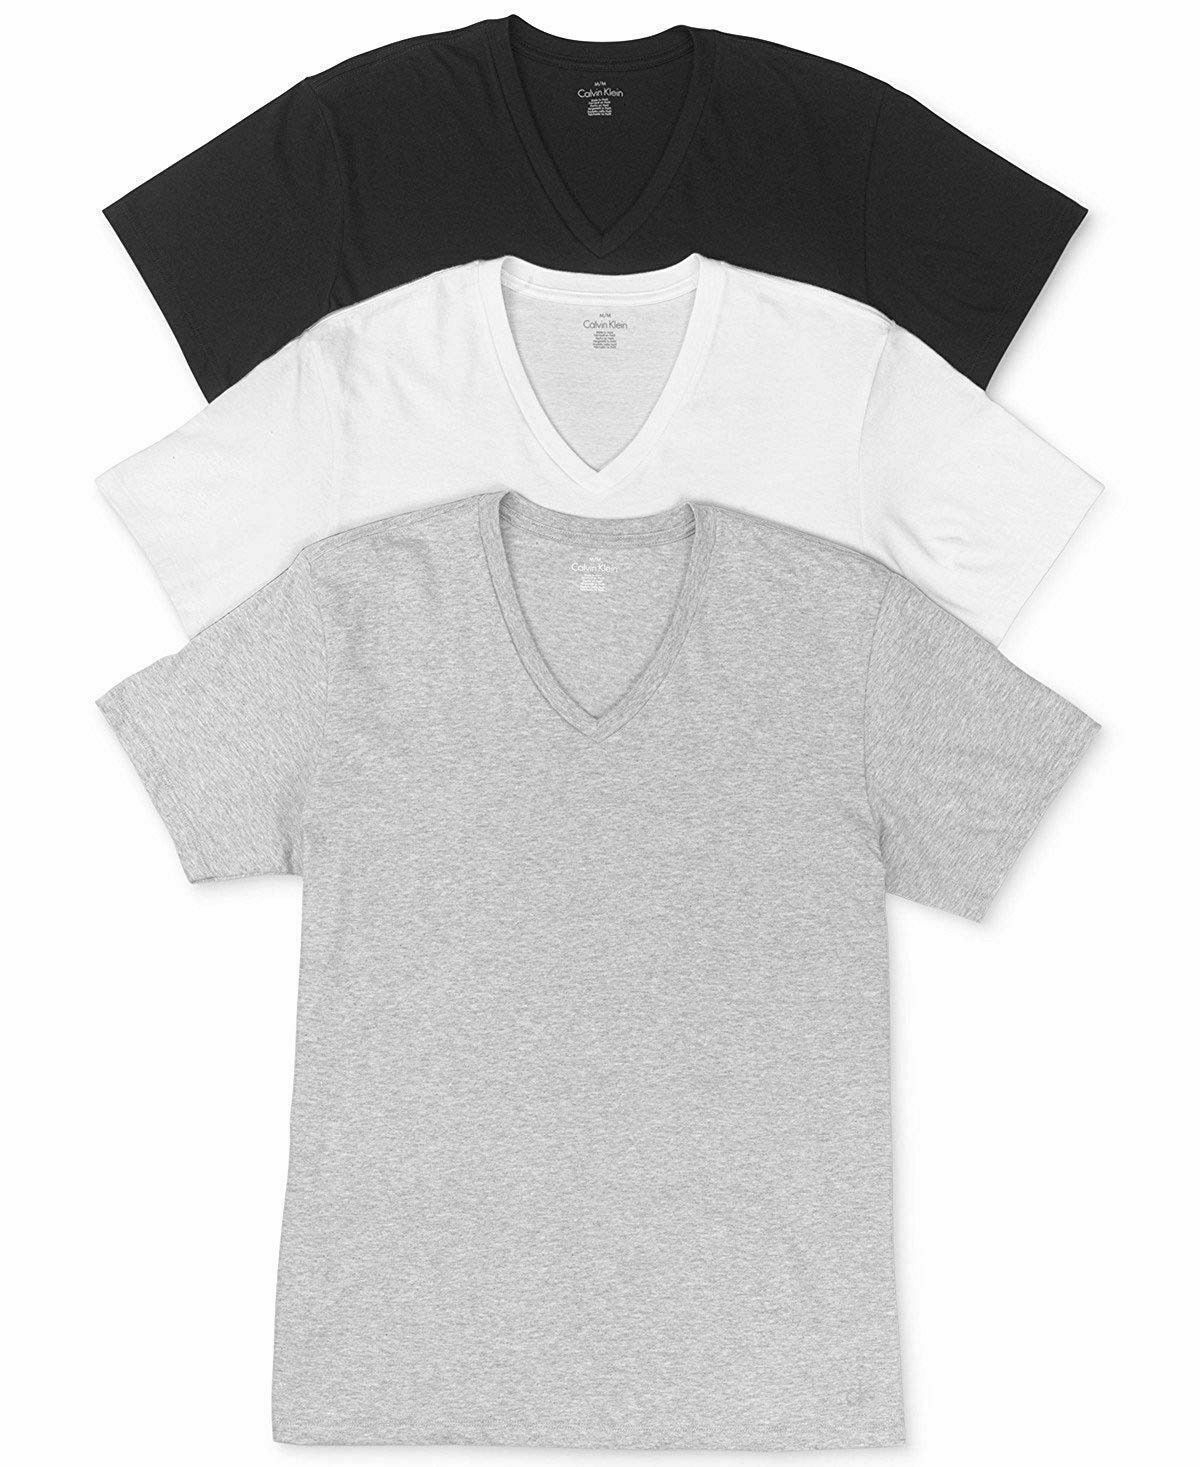 Primary image for Calvin Klein Men's Cotton Stretch Classic Fit V-Neck Short Sleeve T-Shirt 3 PK S